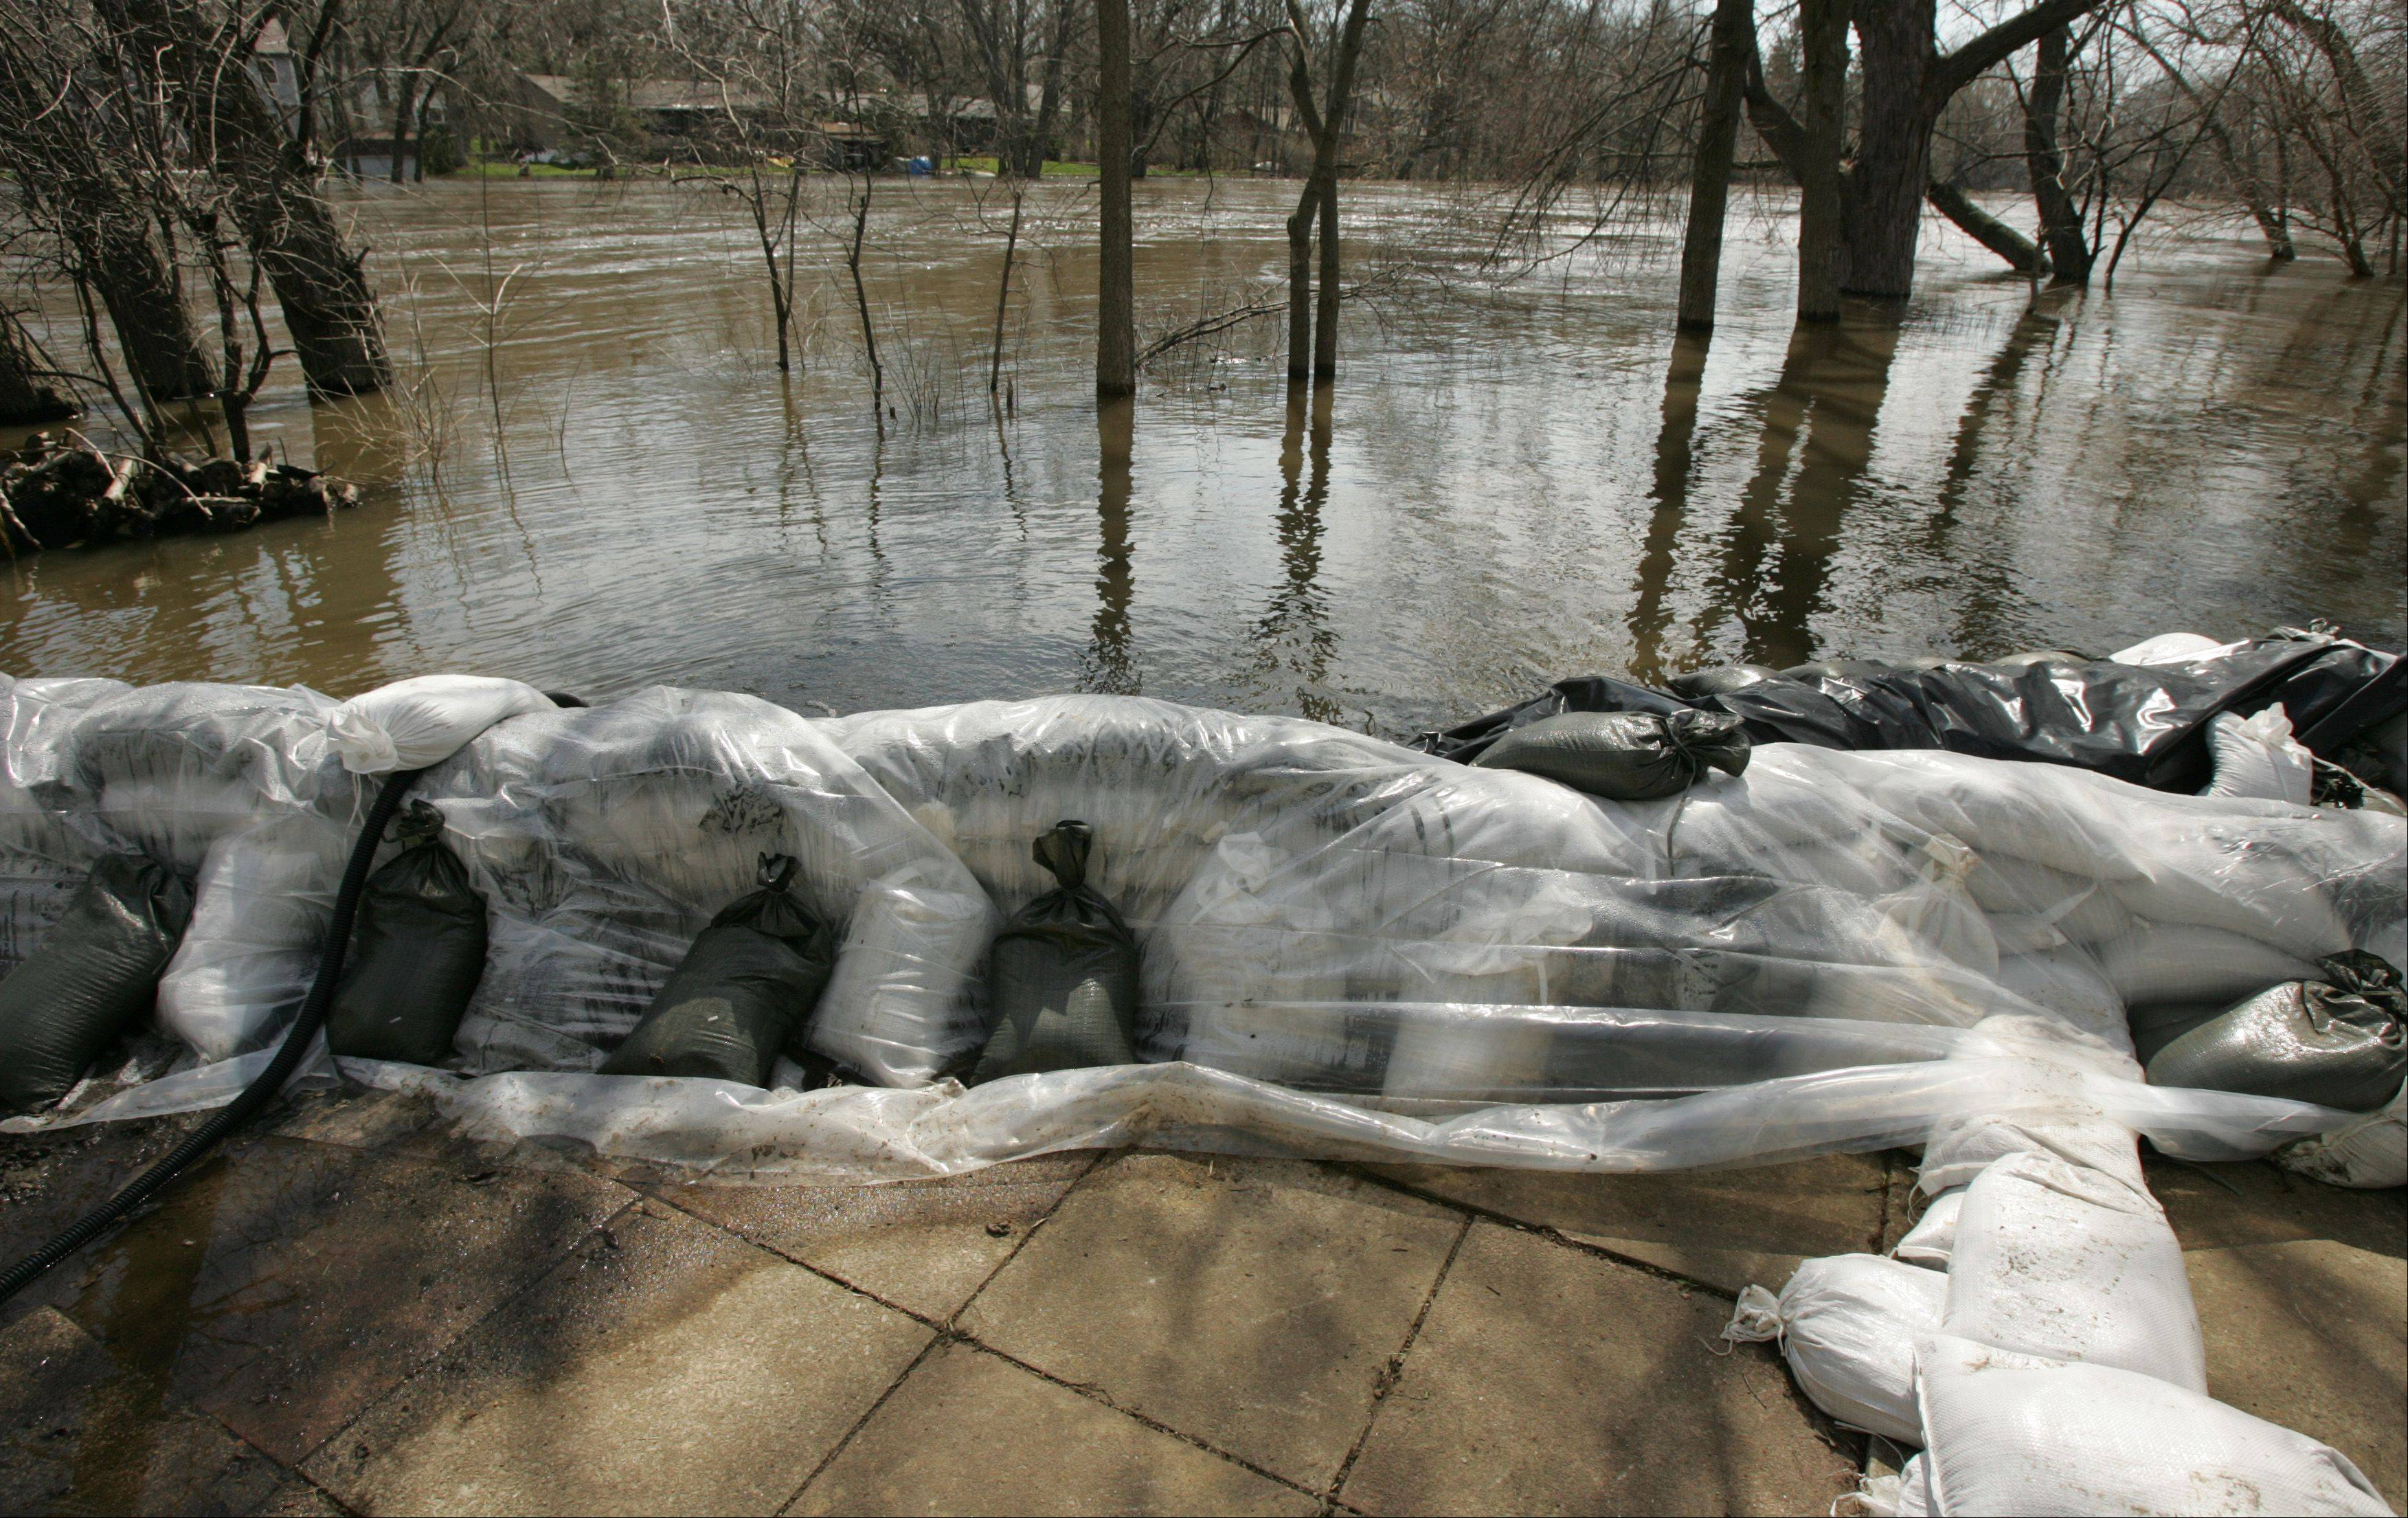 A wall of sand bags is keeping the Fox River at bay behind Tony Angarola's property in Algonquin, and he's hoping the rain this week is minimal to keep the level from rising further.